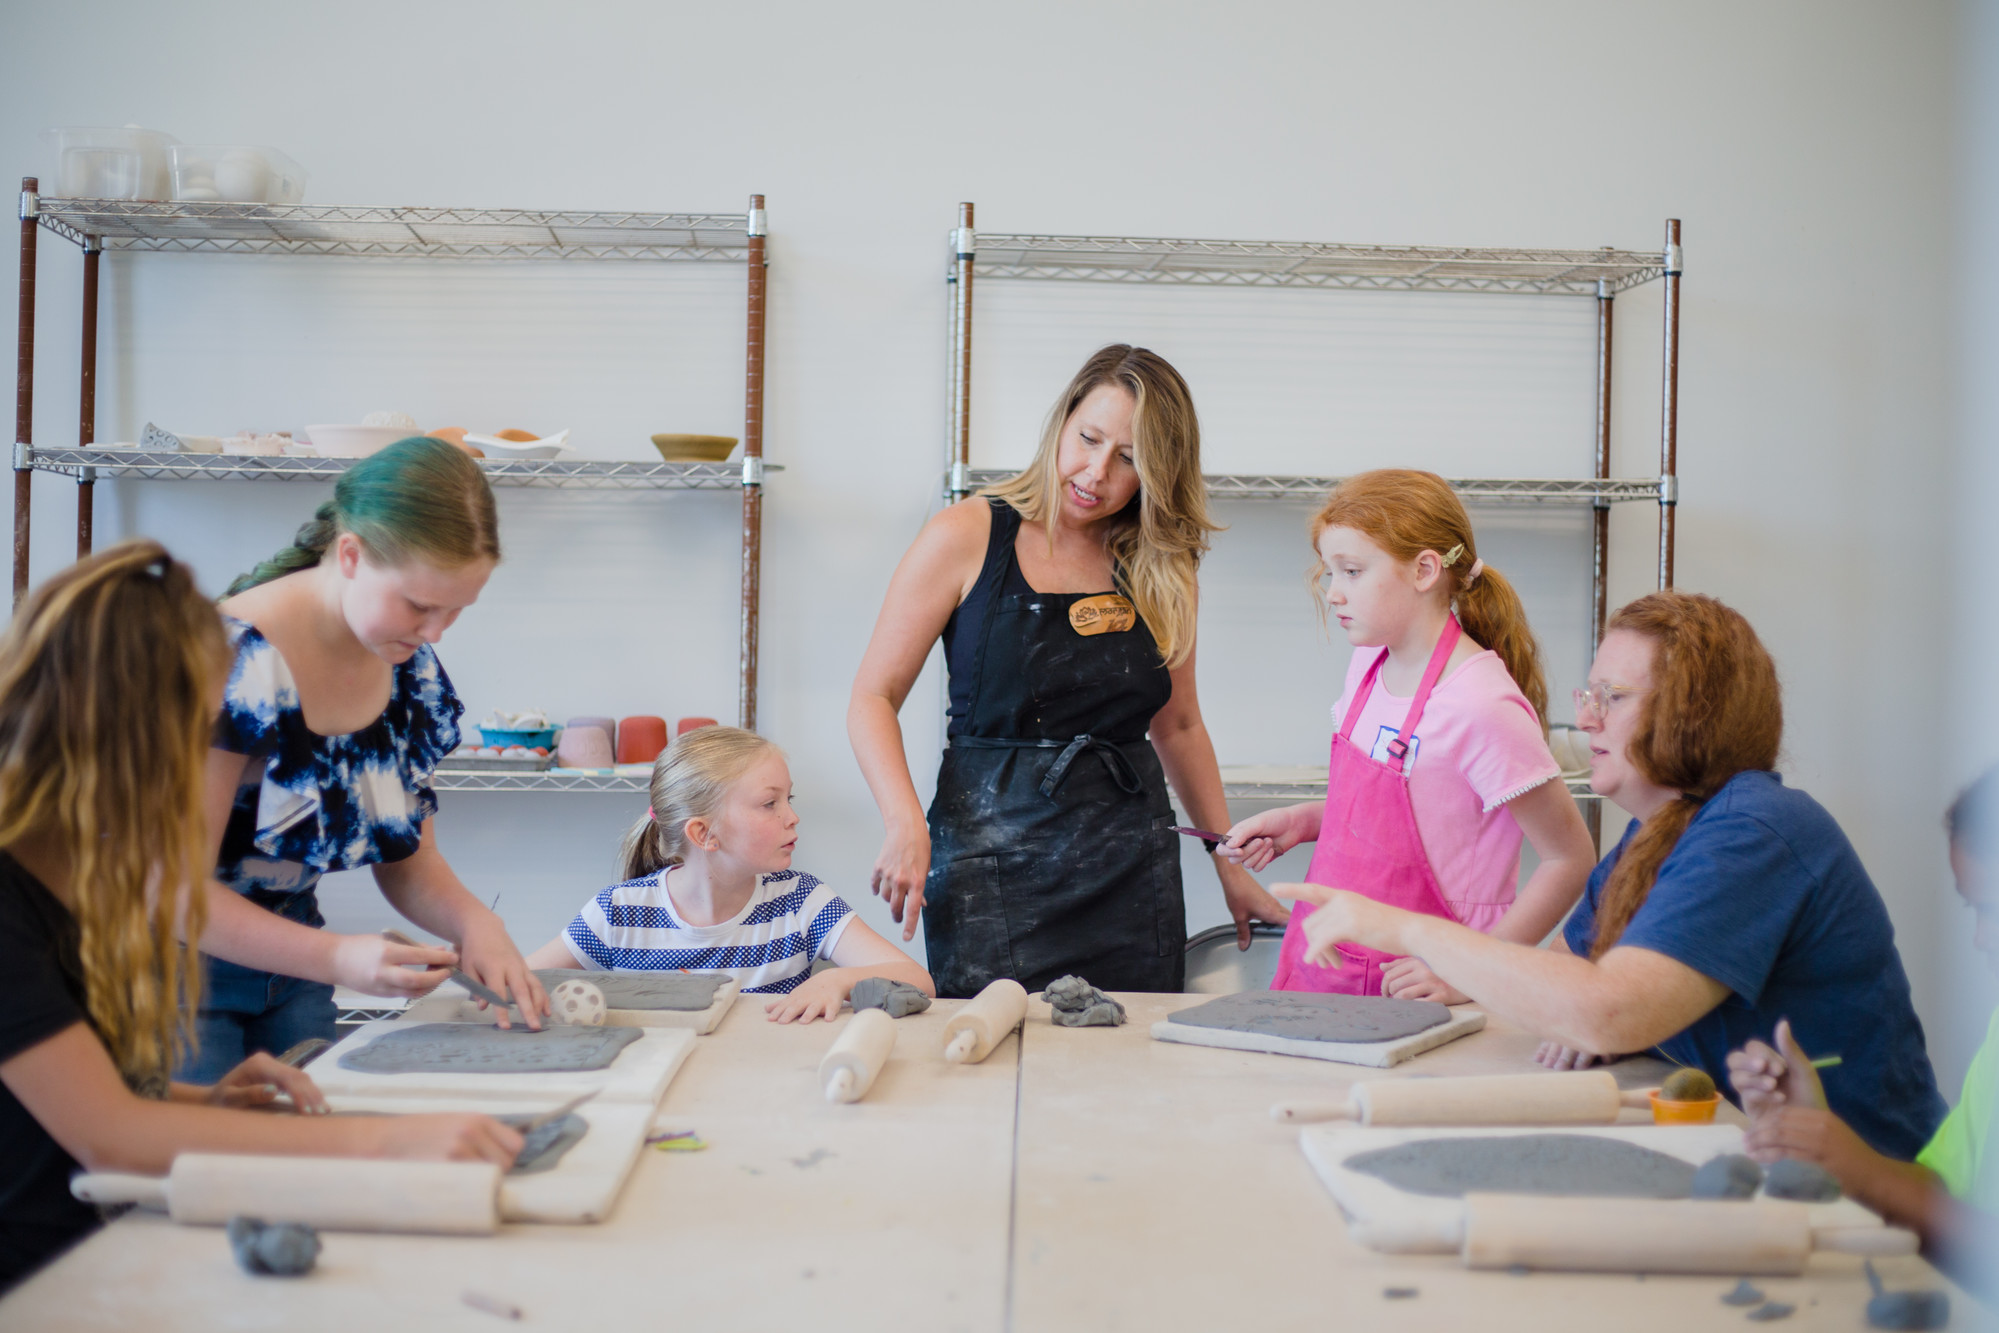 Morgan Edwards gives directions during her summer youth pottery class on Tuesday at the Sumter County Gallery of Art.